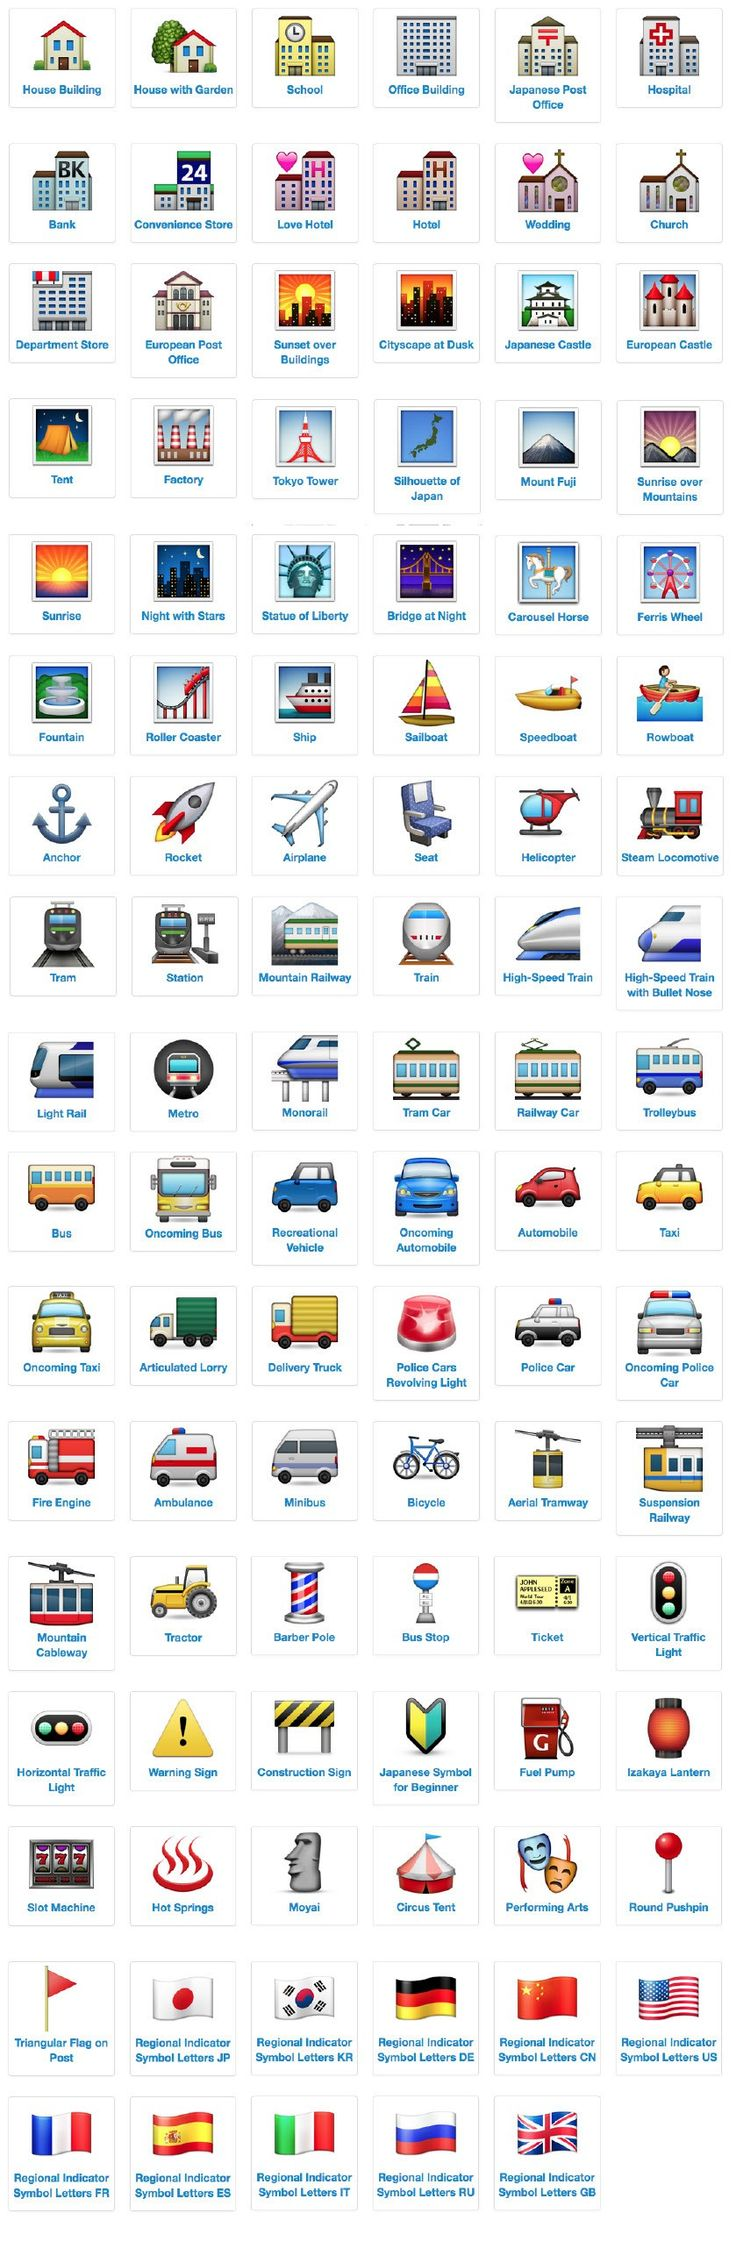 Alien face in box emoji meanings - Emoji Icon List Places With Meanings